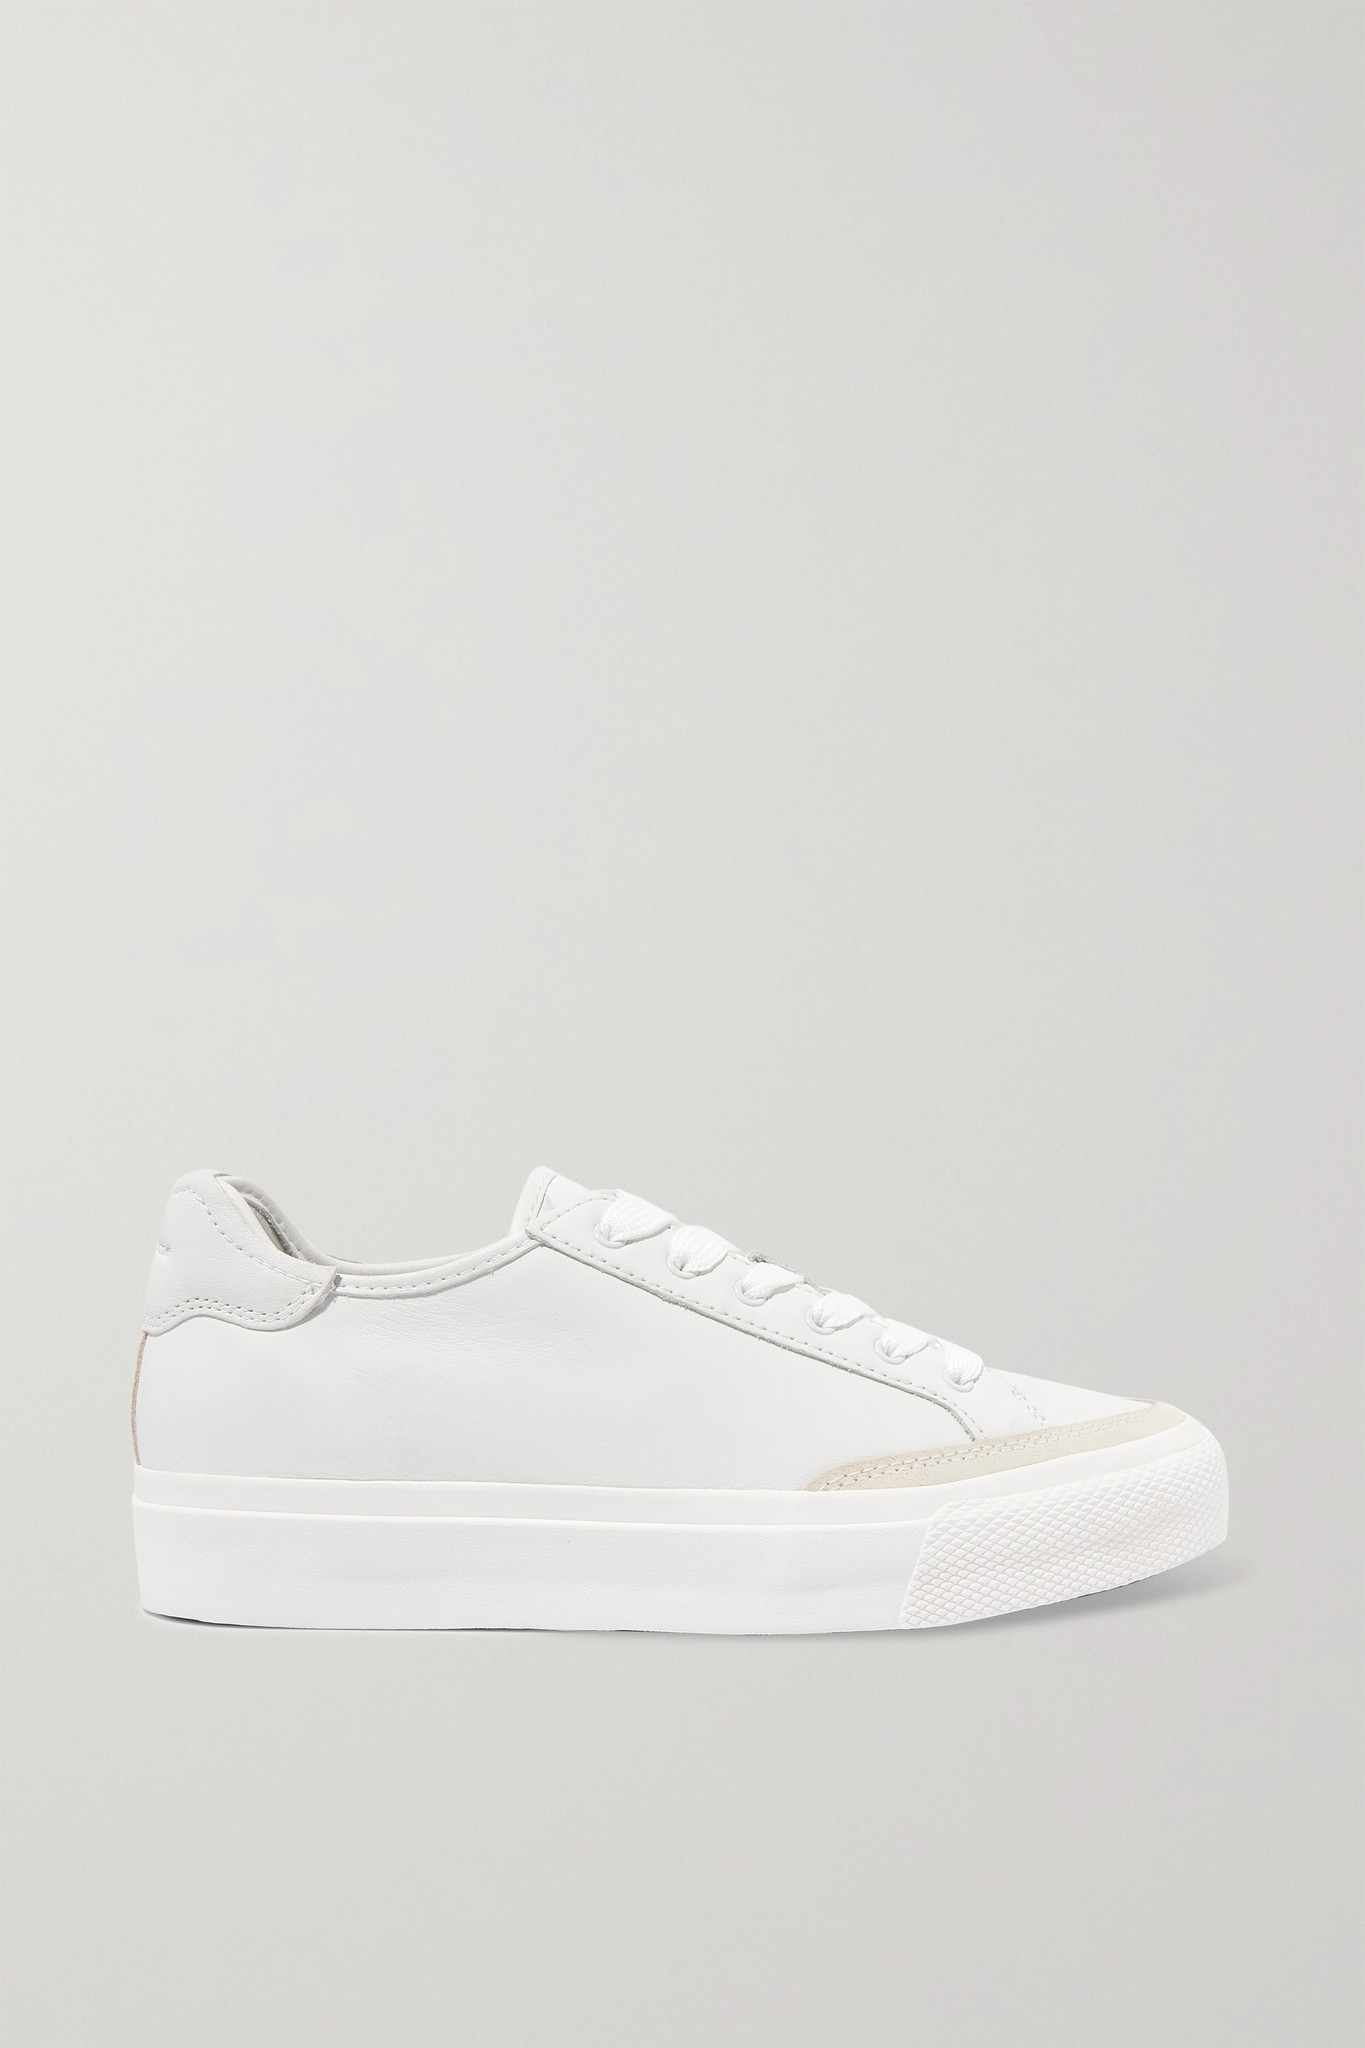 RAG & BONE - Army Suede-trimmed Leather Sneakers - White - IT40